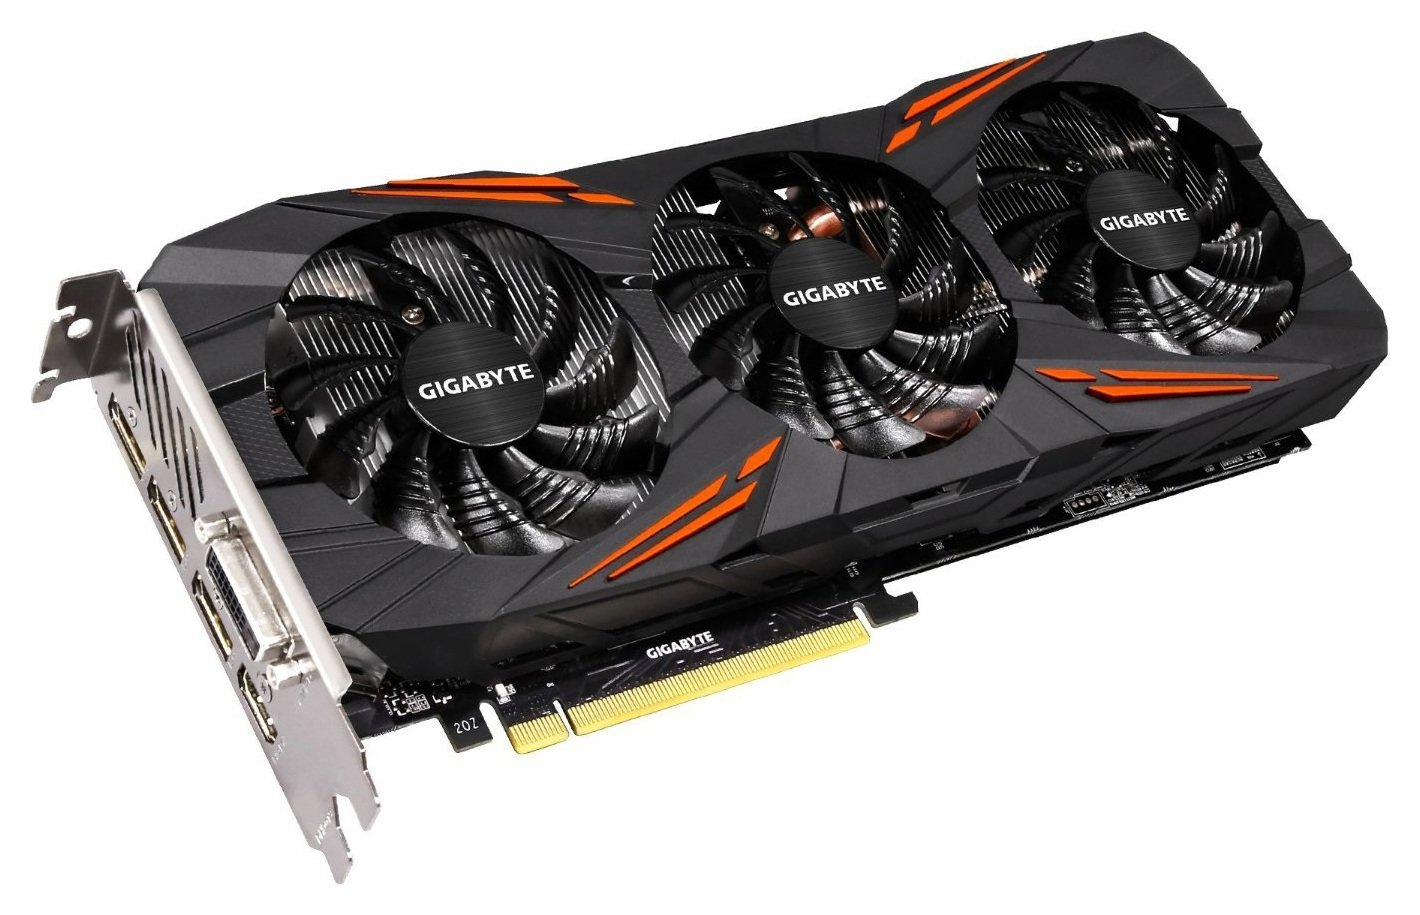 gigabyte-geforce-gtx1080-g1-8gb-gaming-graphics-card